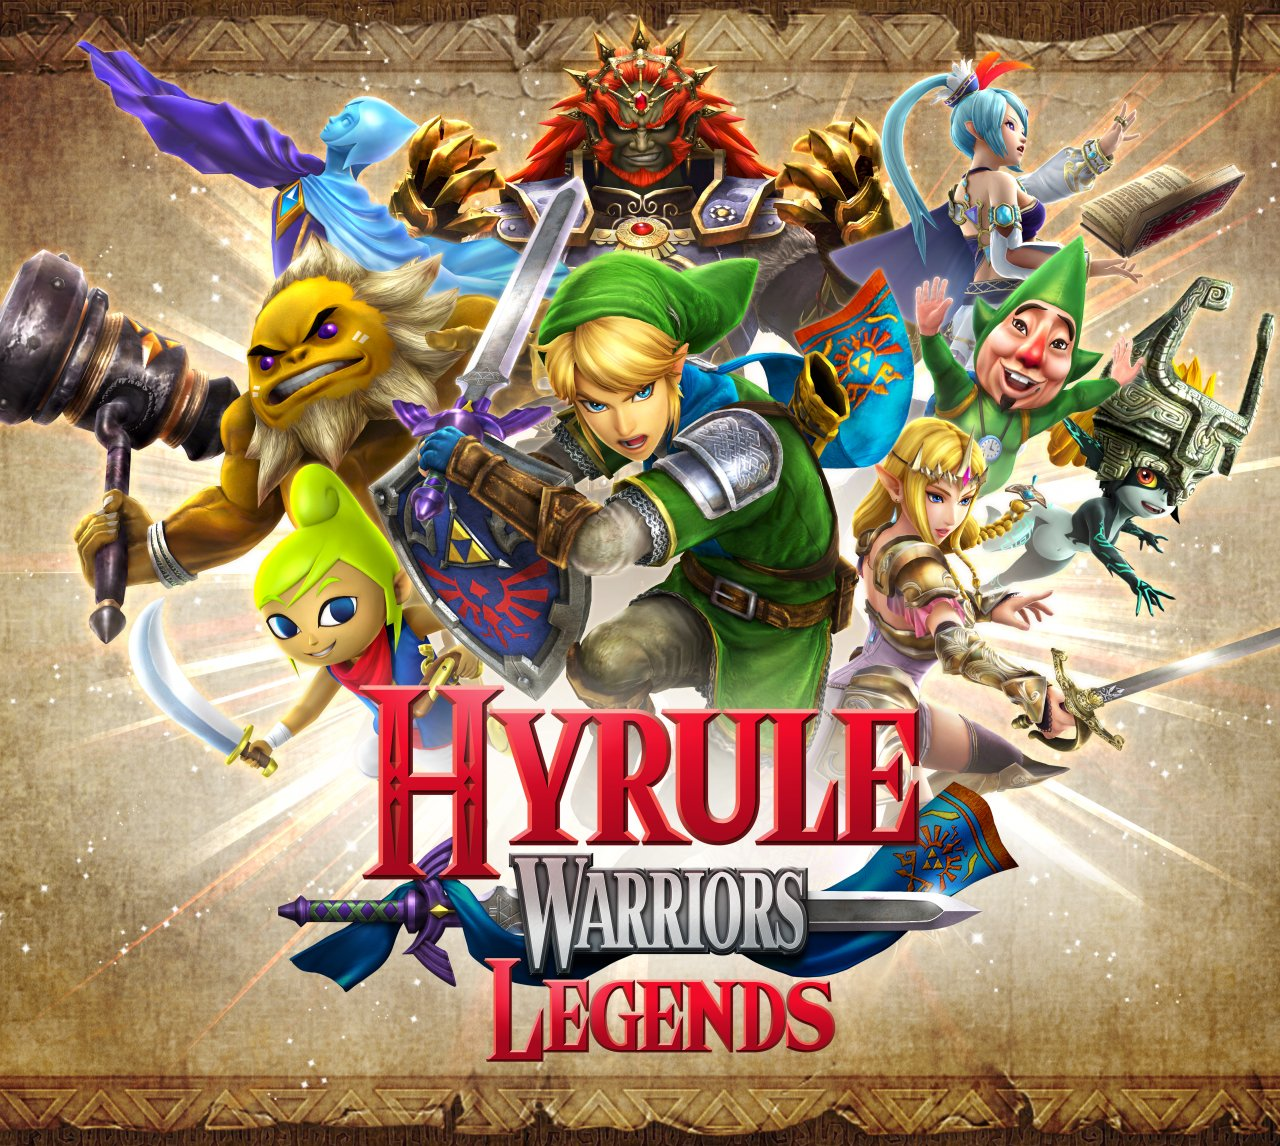 Hyrule Warriors Legends – Producer Confirms More Characters